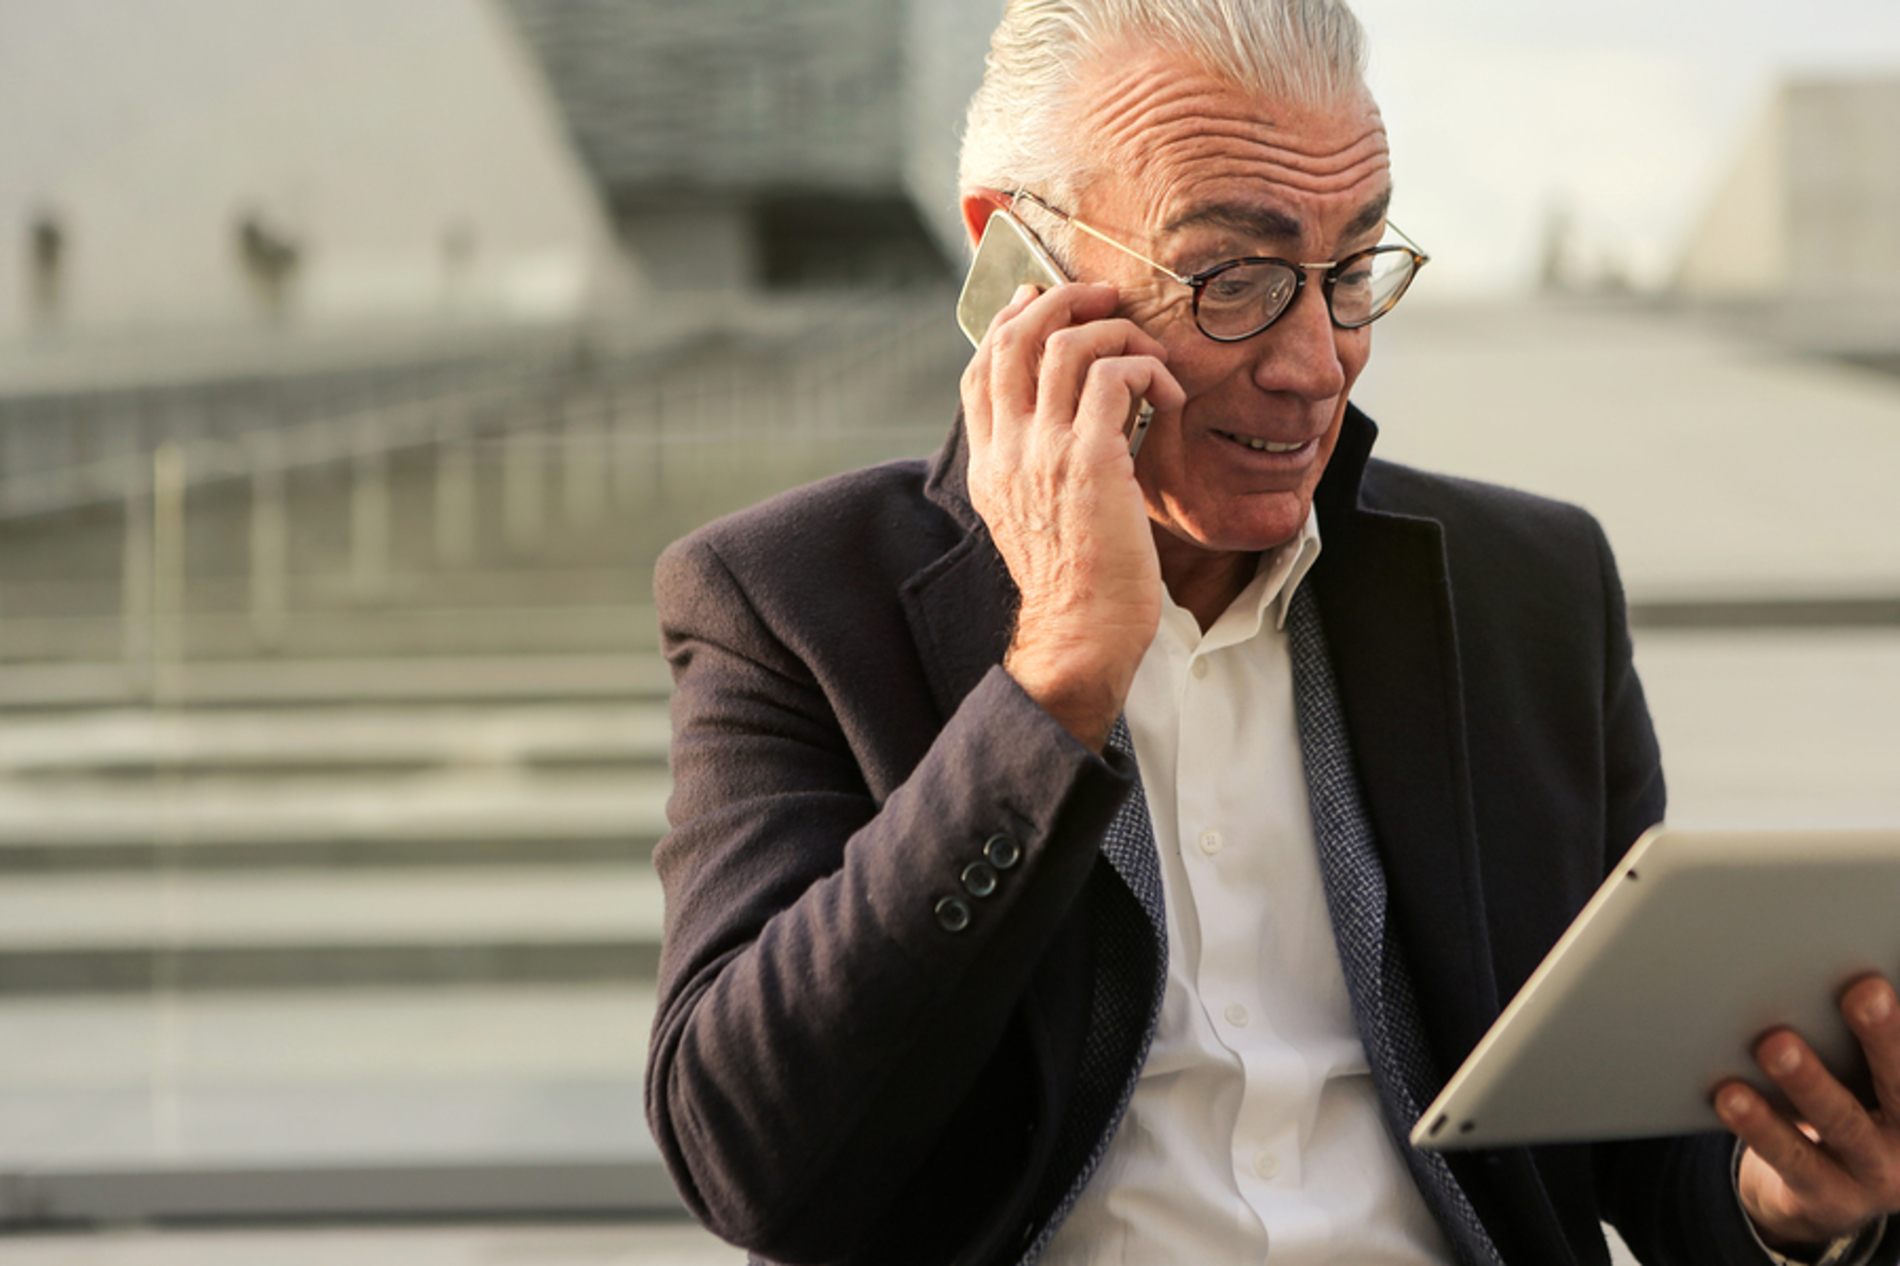 Man looking at a tablet while talking on the phone.